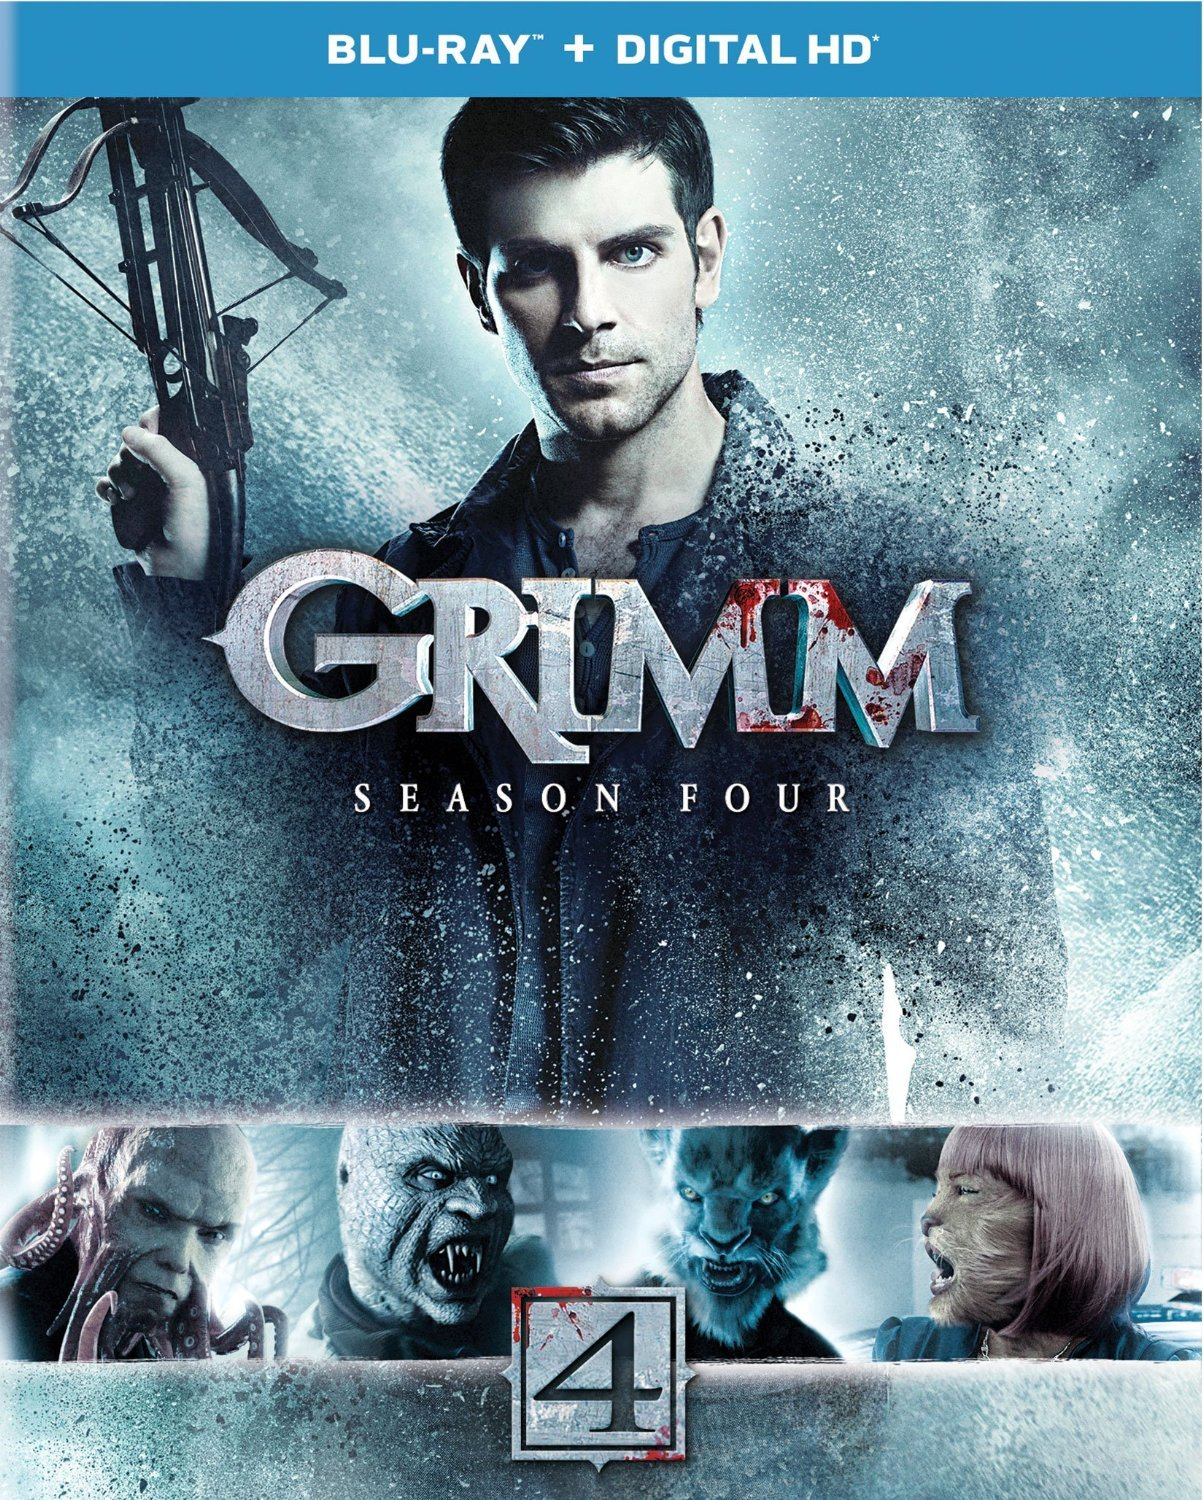 Grimm Season 4 on DVD and Bluray is out TODAY!